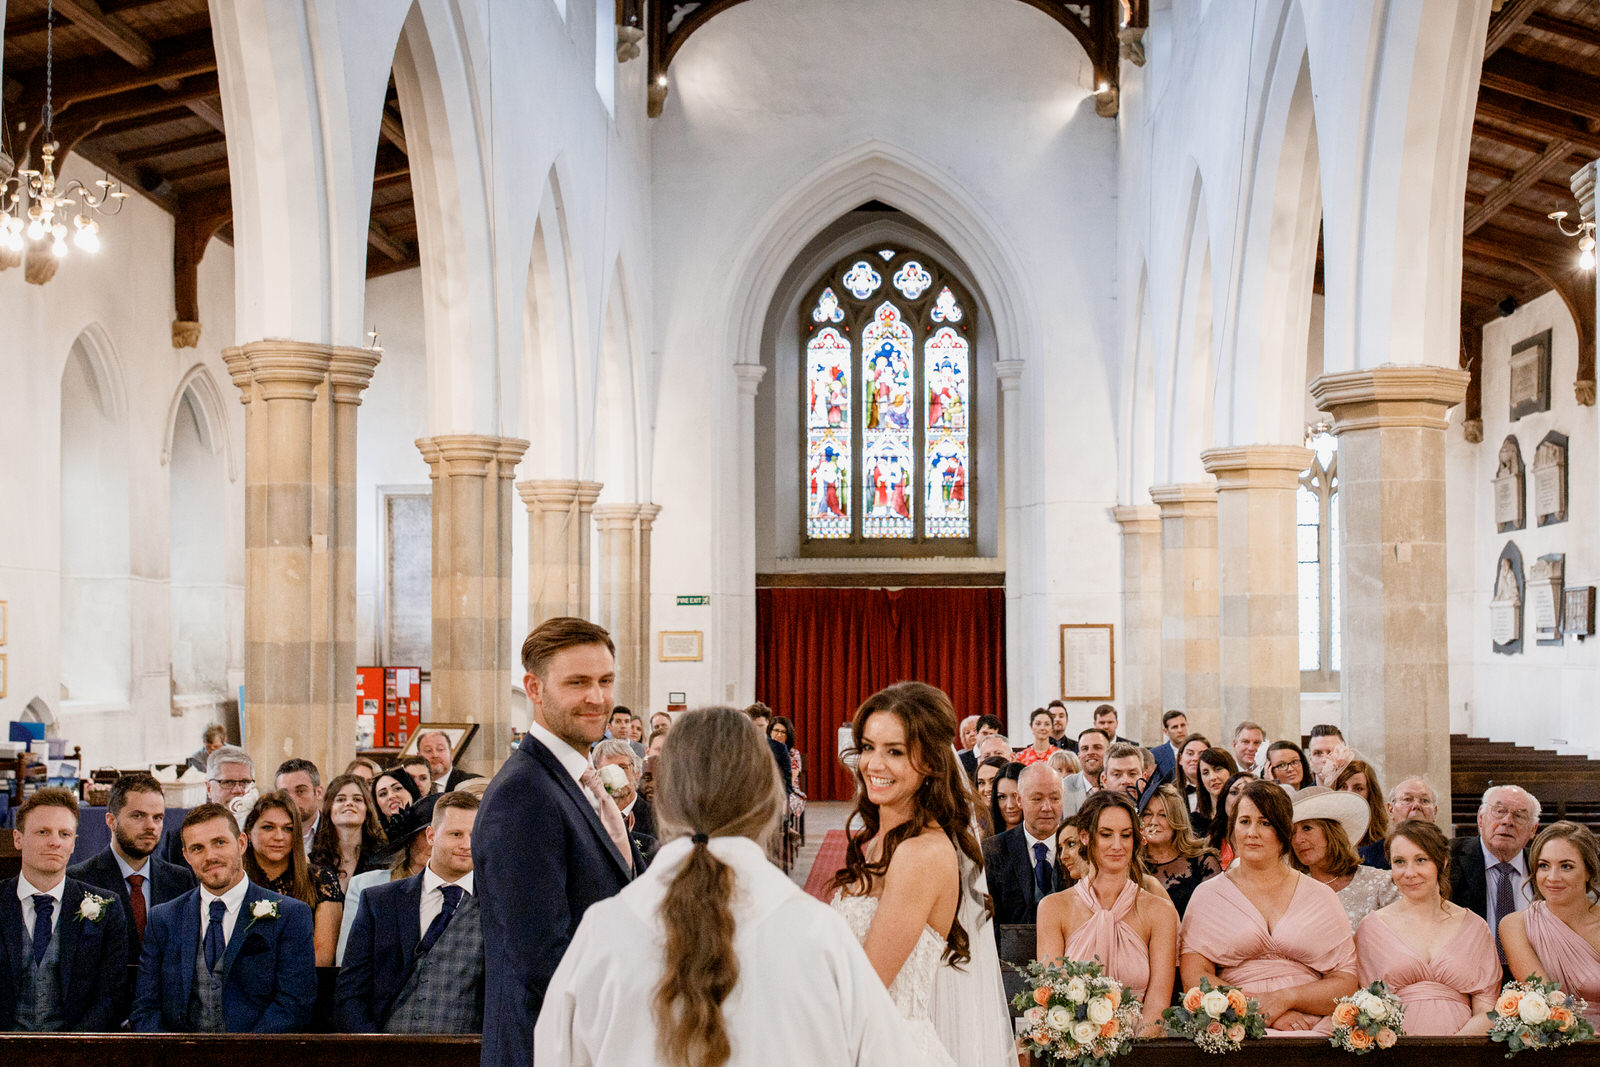 st marys church wedding photographer